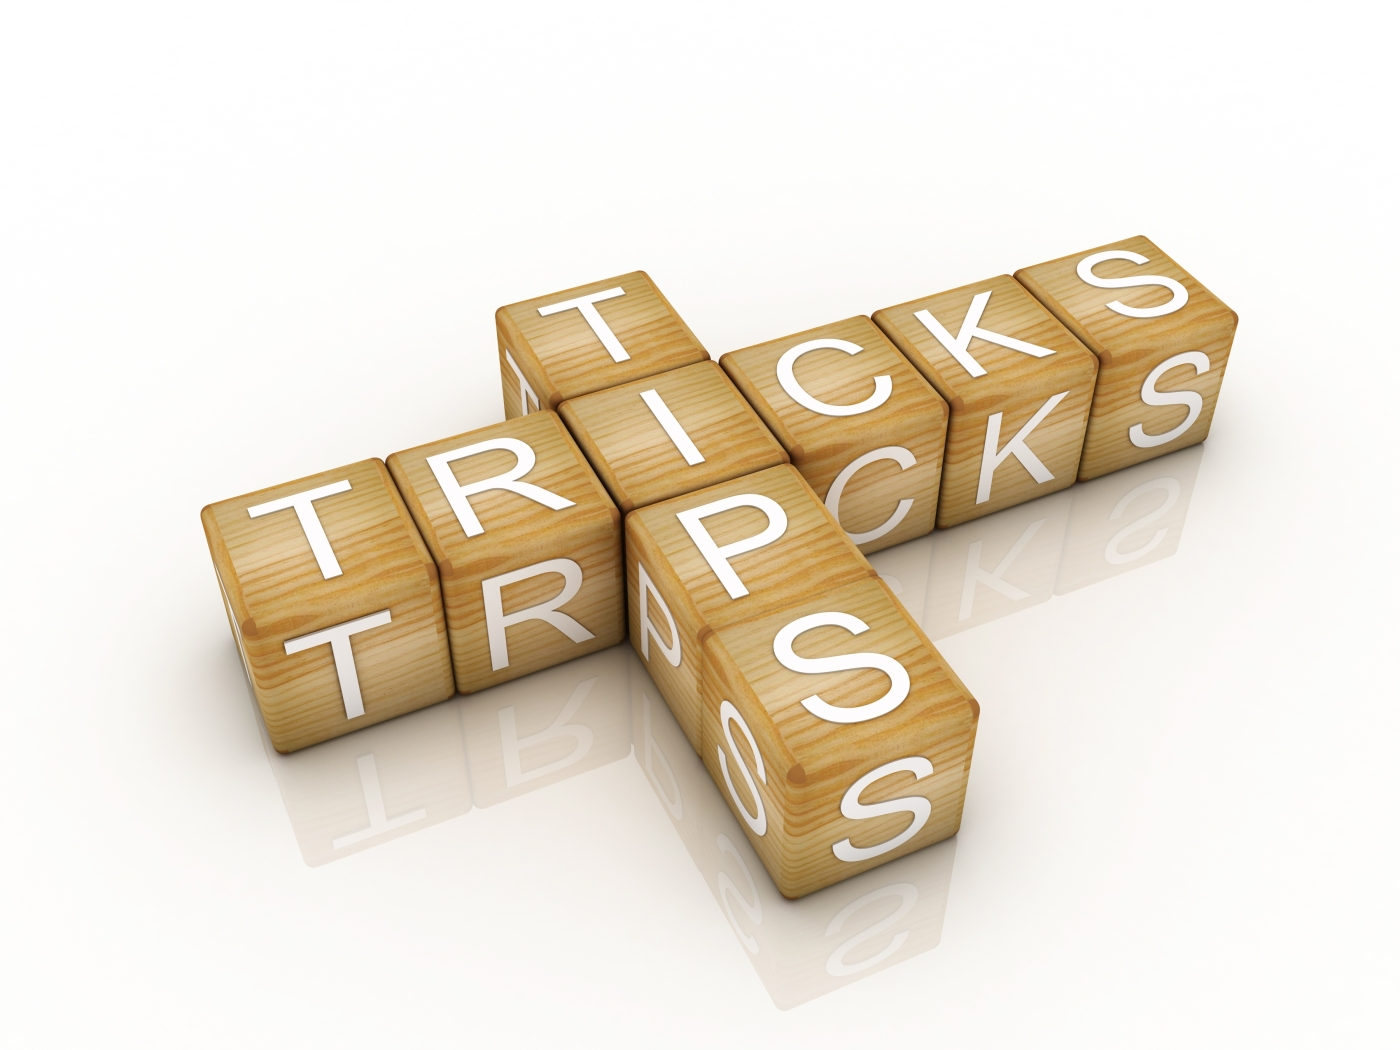 Image of wooden blocks reading 'Tips and tricks'